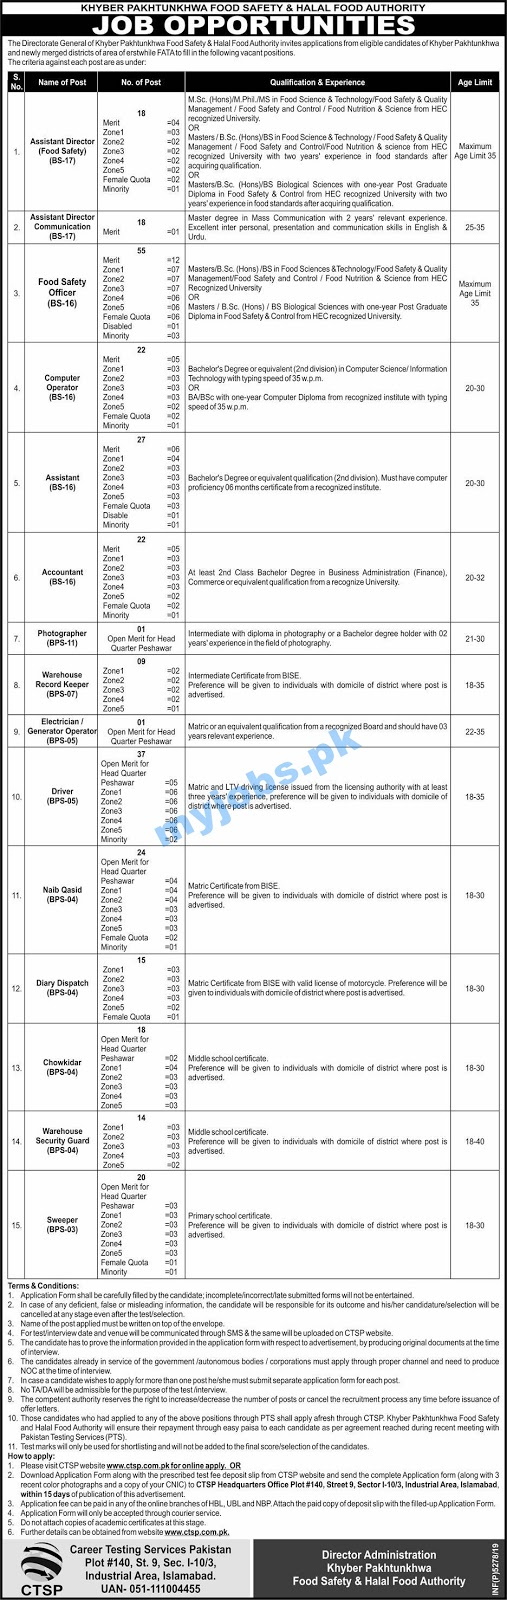 FOOD SAFETY & HALAL FOOD AUTHORITY JOB OPPORTUNITIES